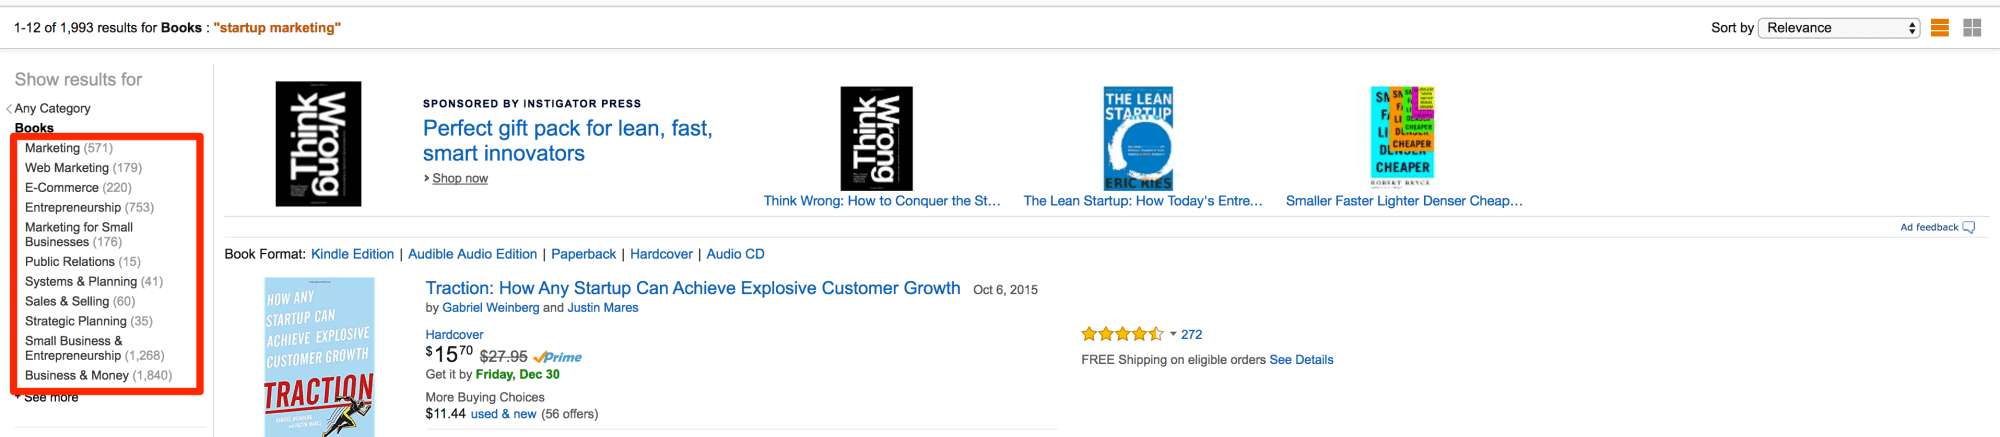 Browsing through Amazon sub categories to find content ideas